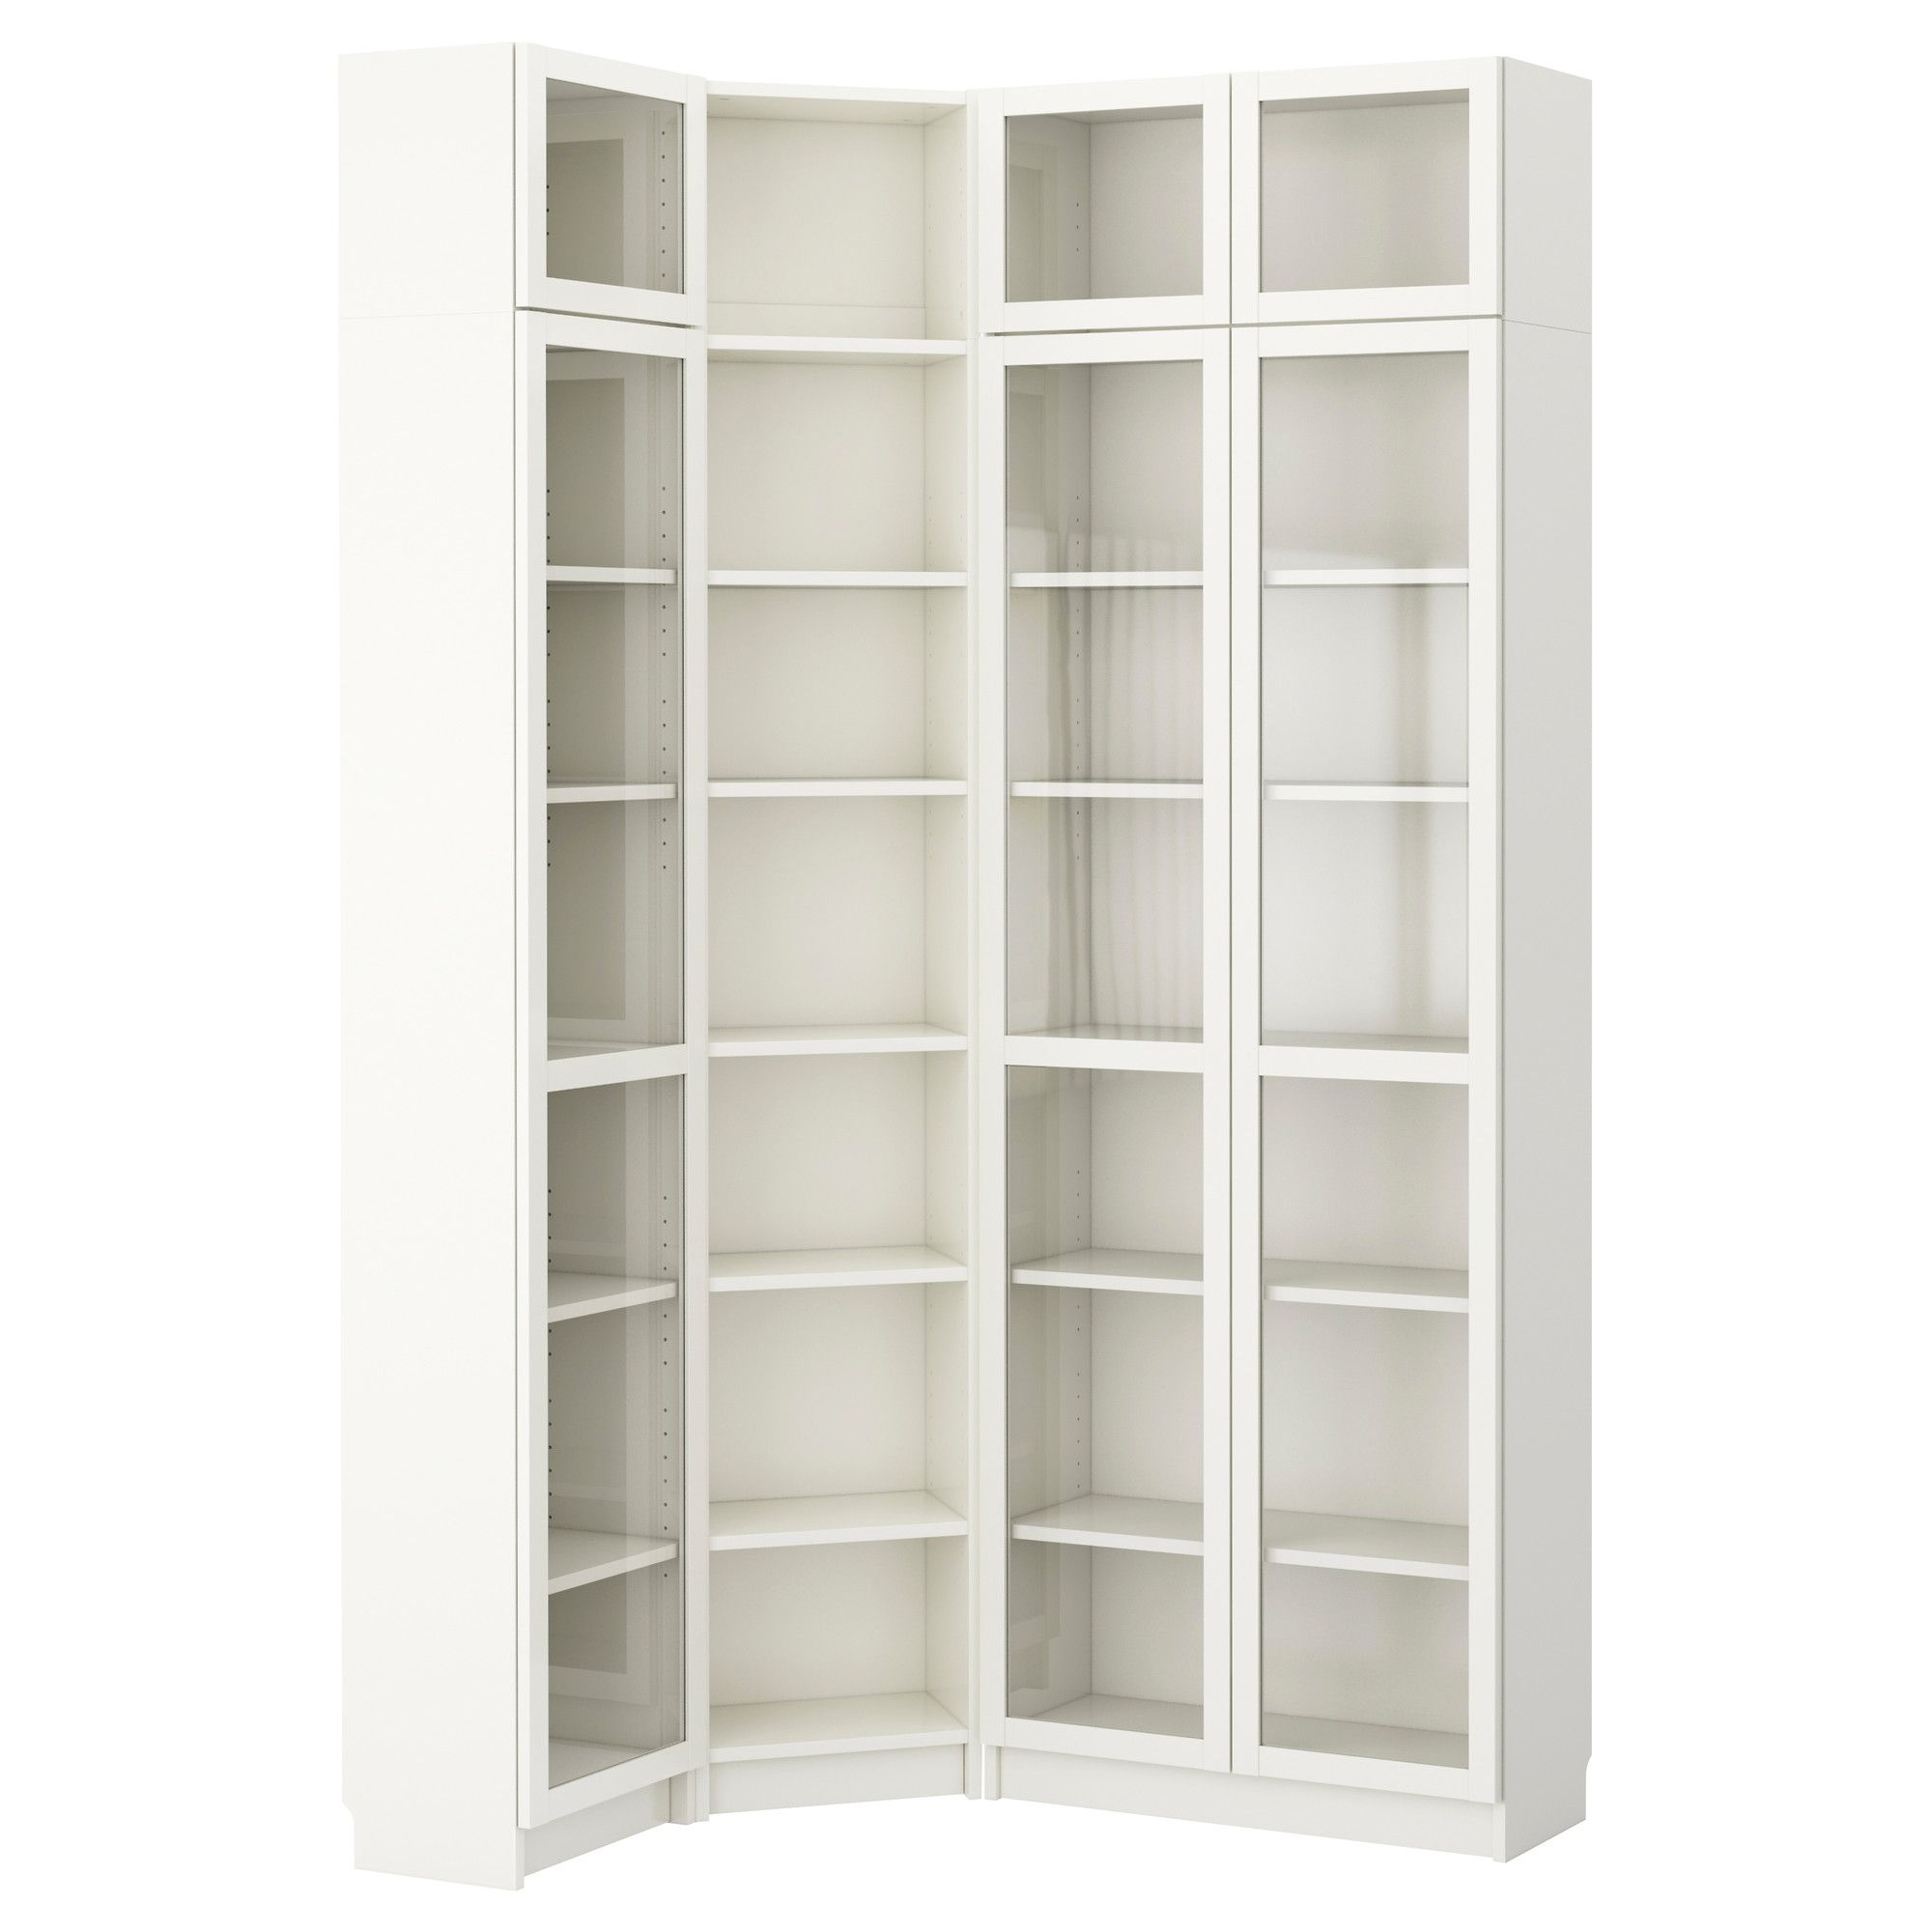 Billy comb librer as m dulo esquina blanco ikea 280 for Muebles billy ikea